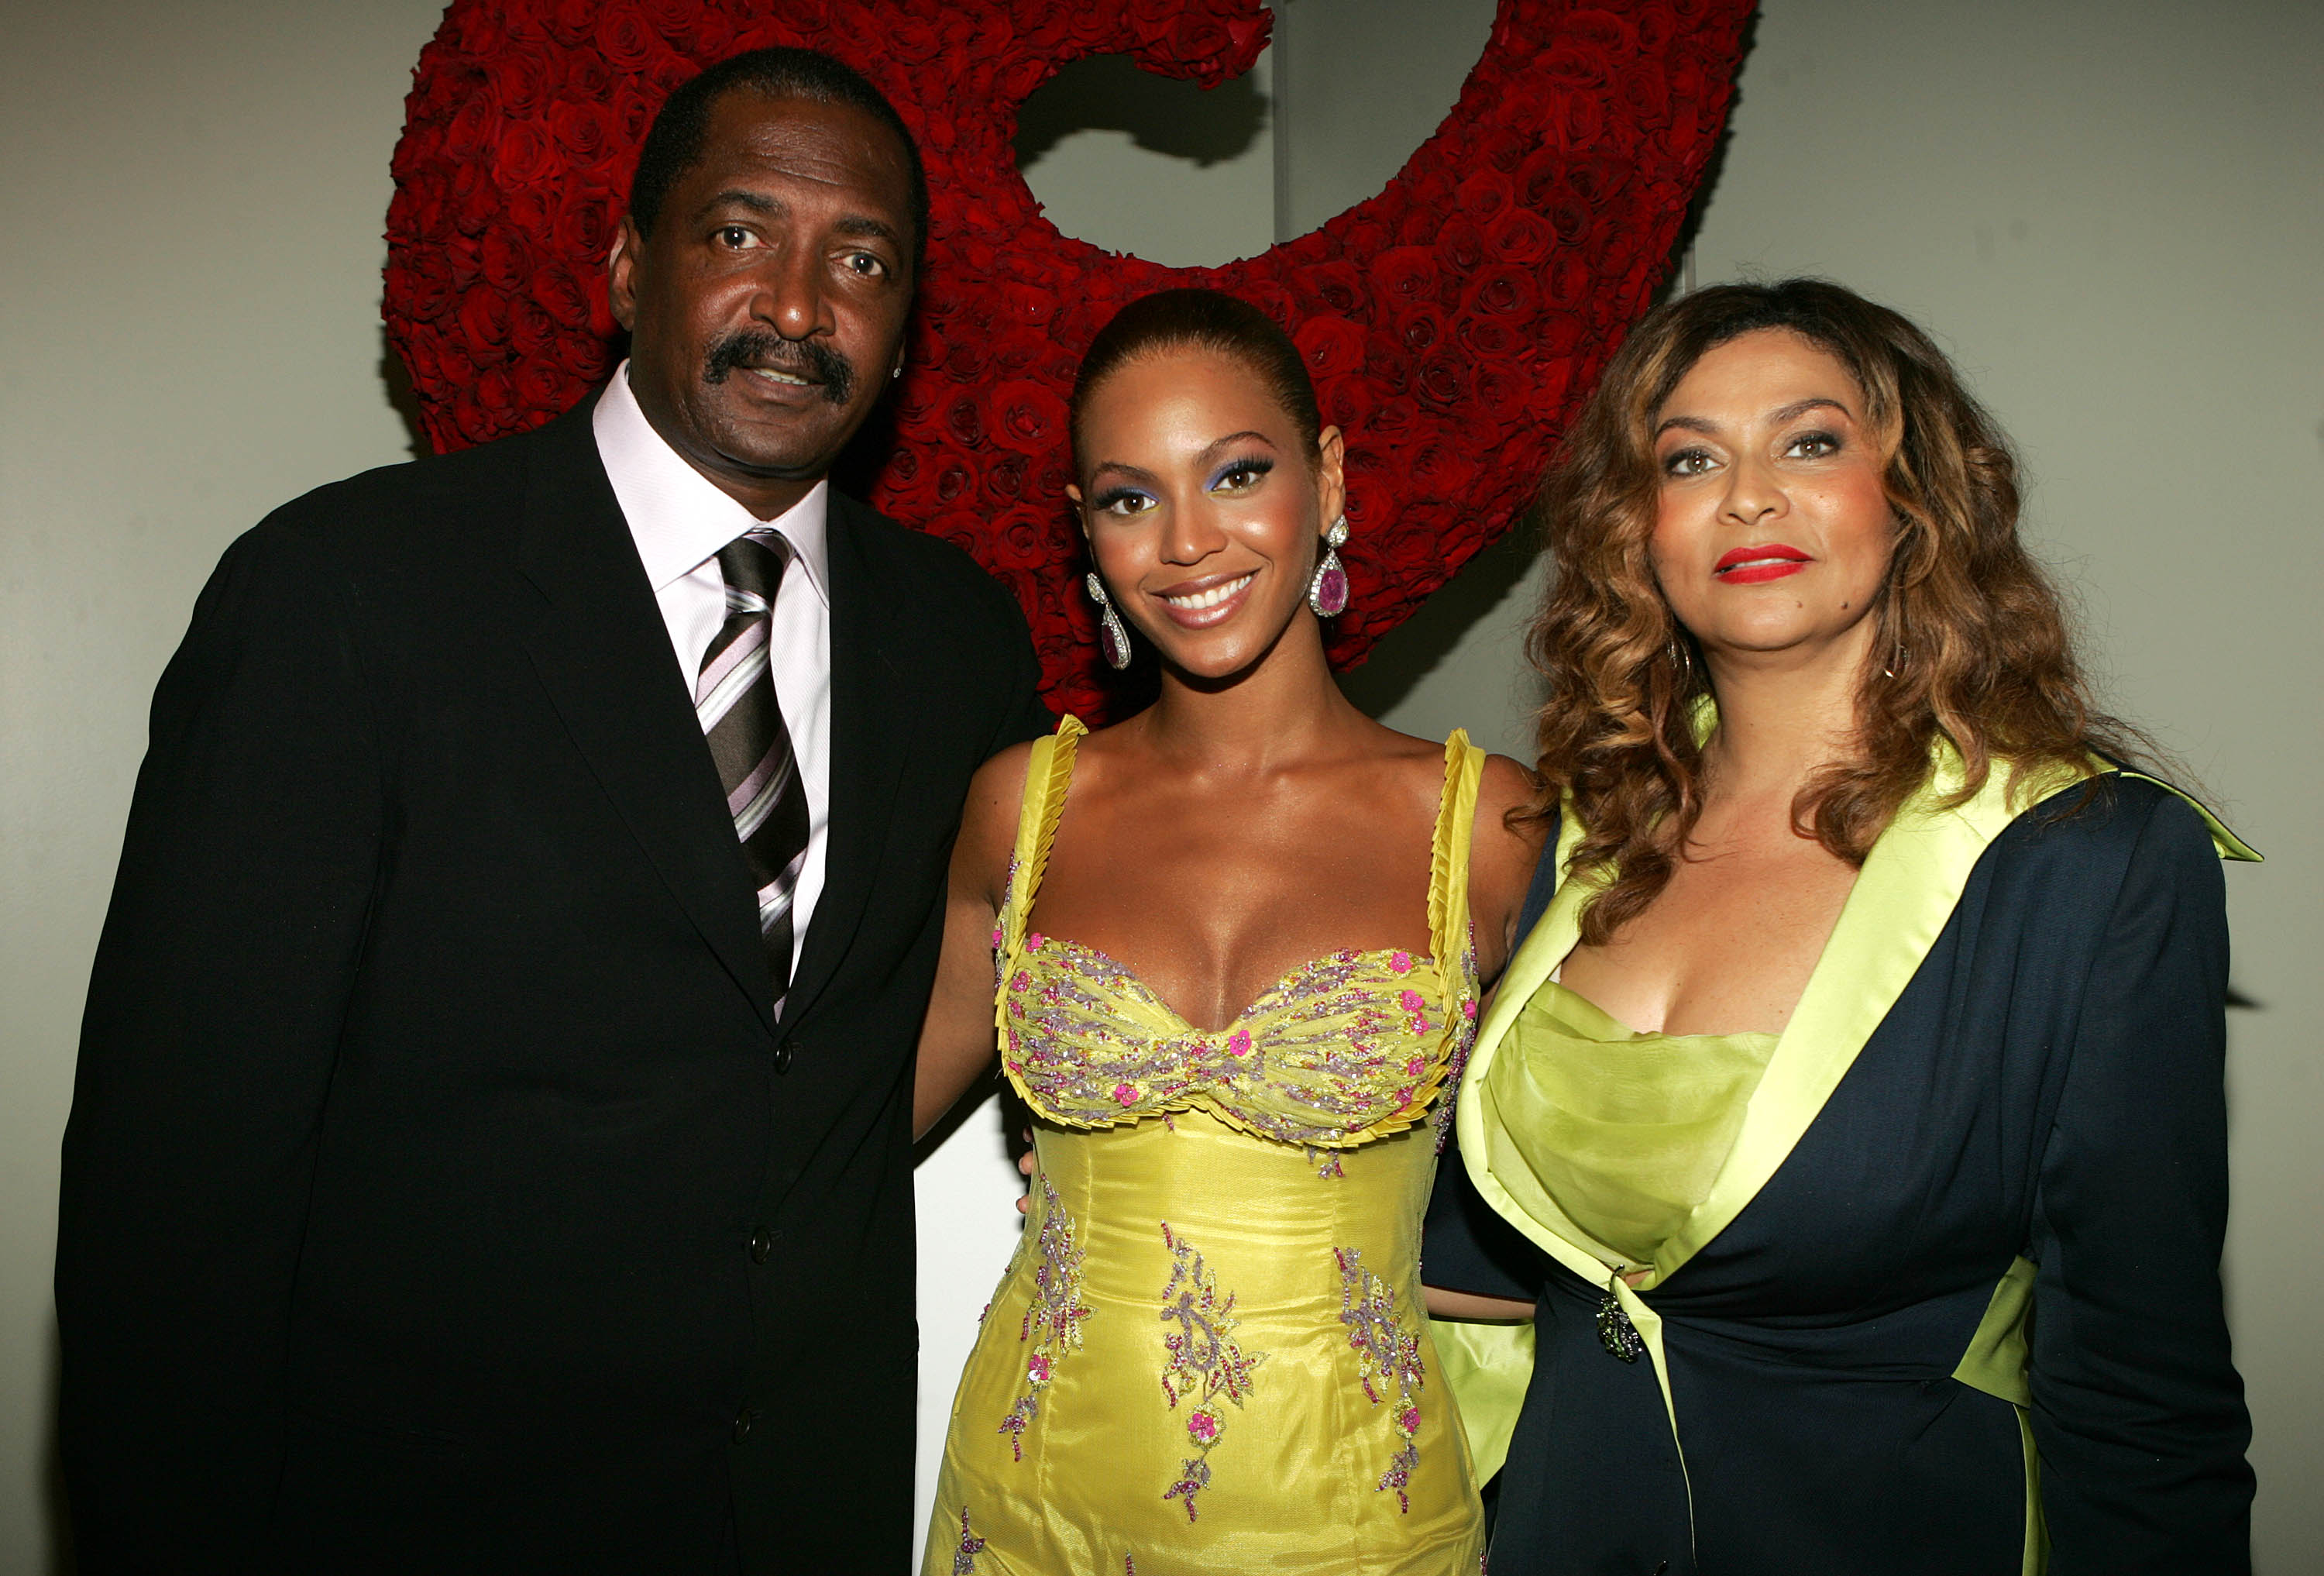 Beyoncé's father: I dated her mother because I thought she was white